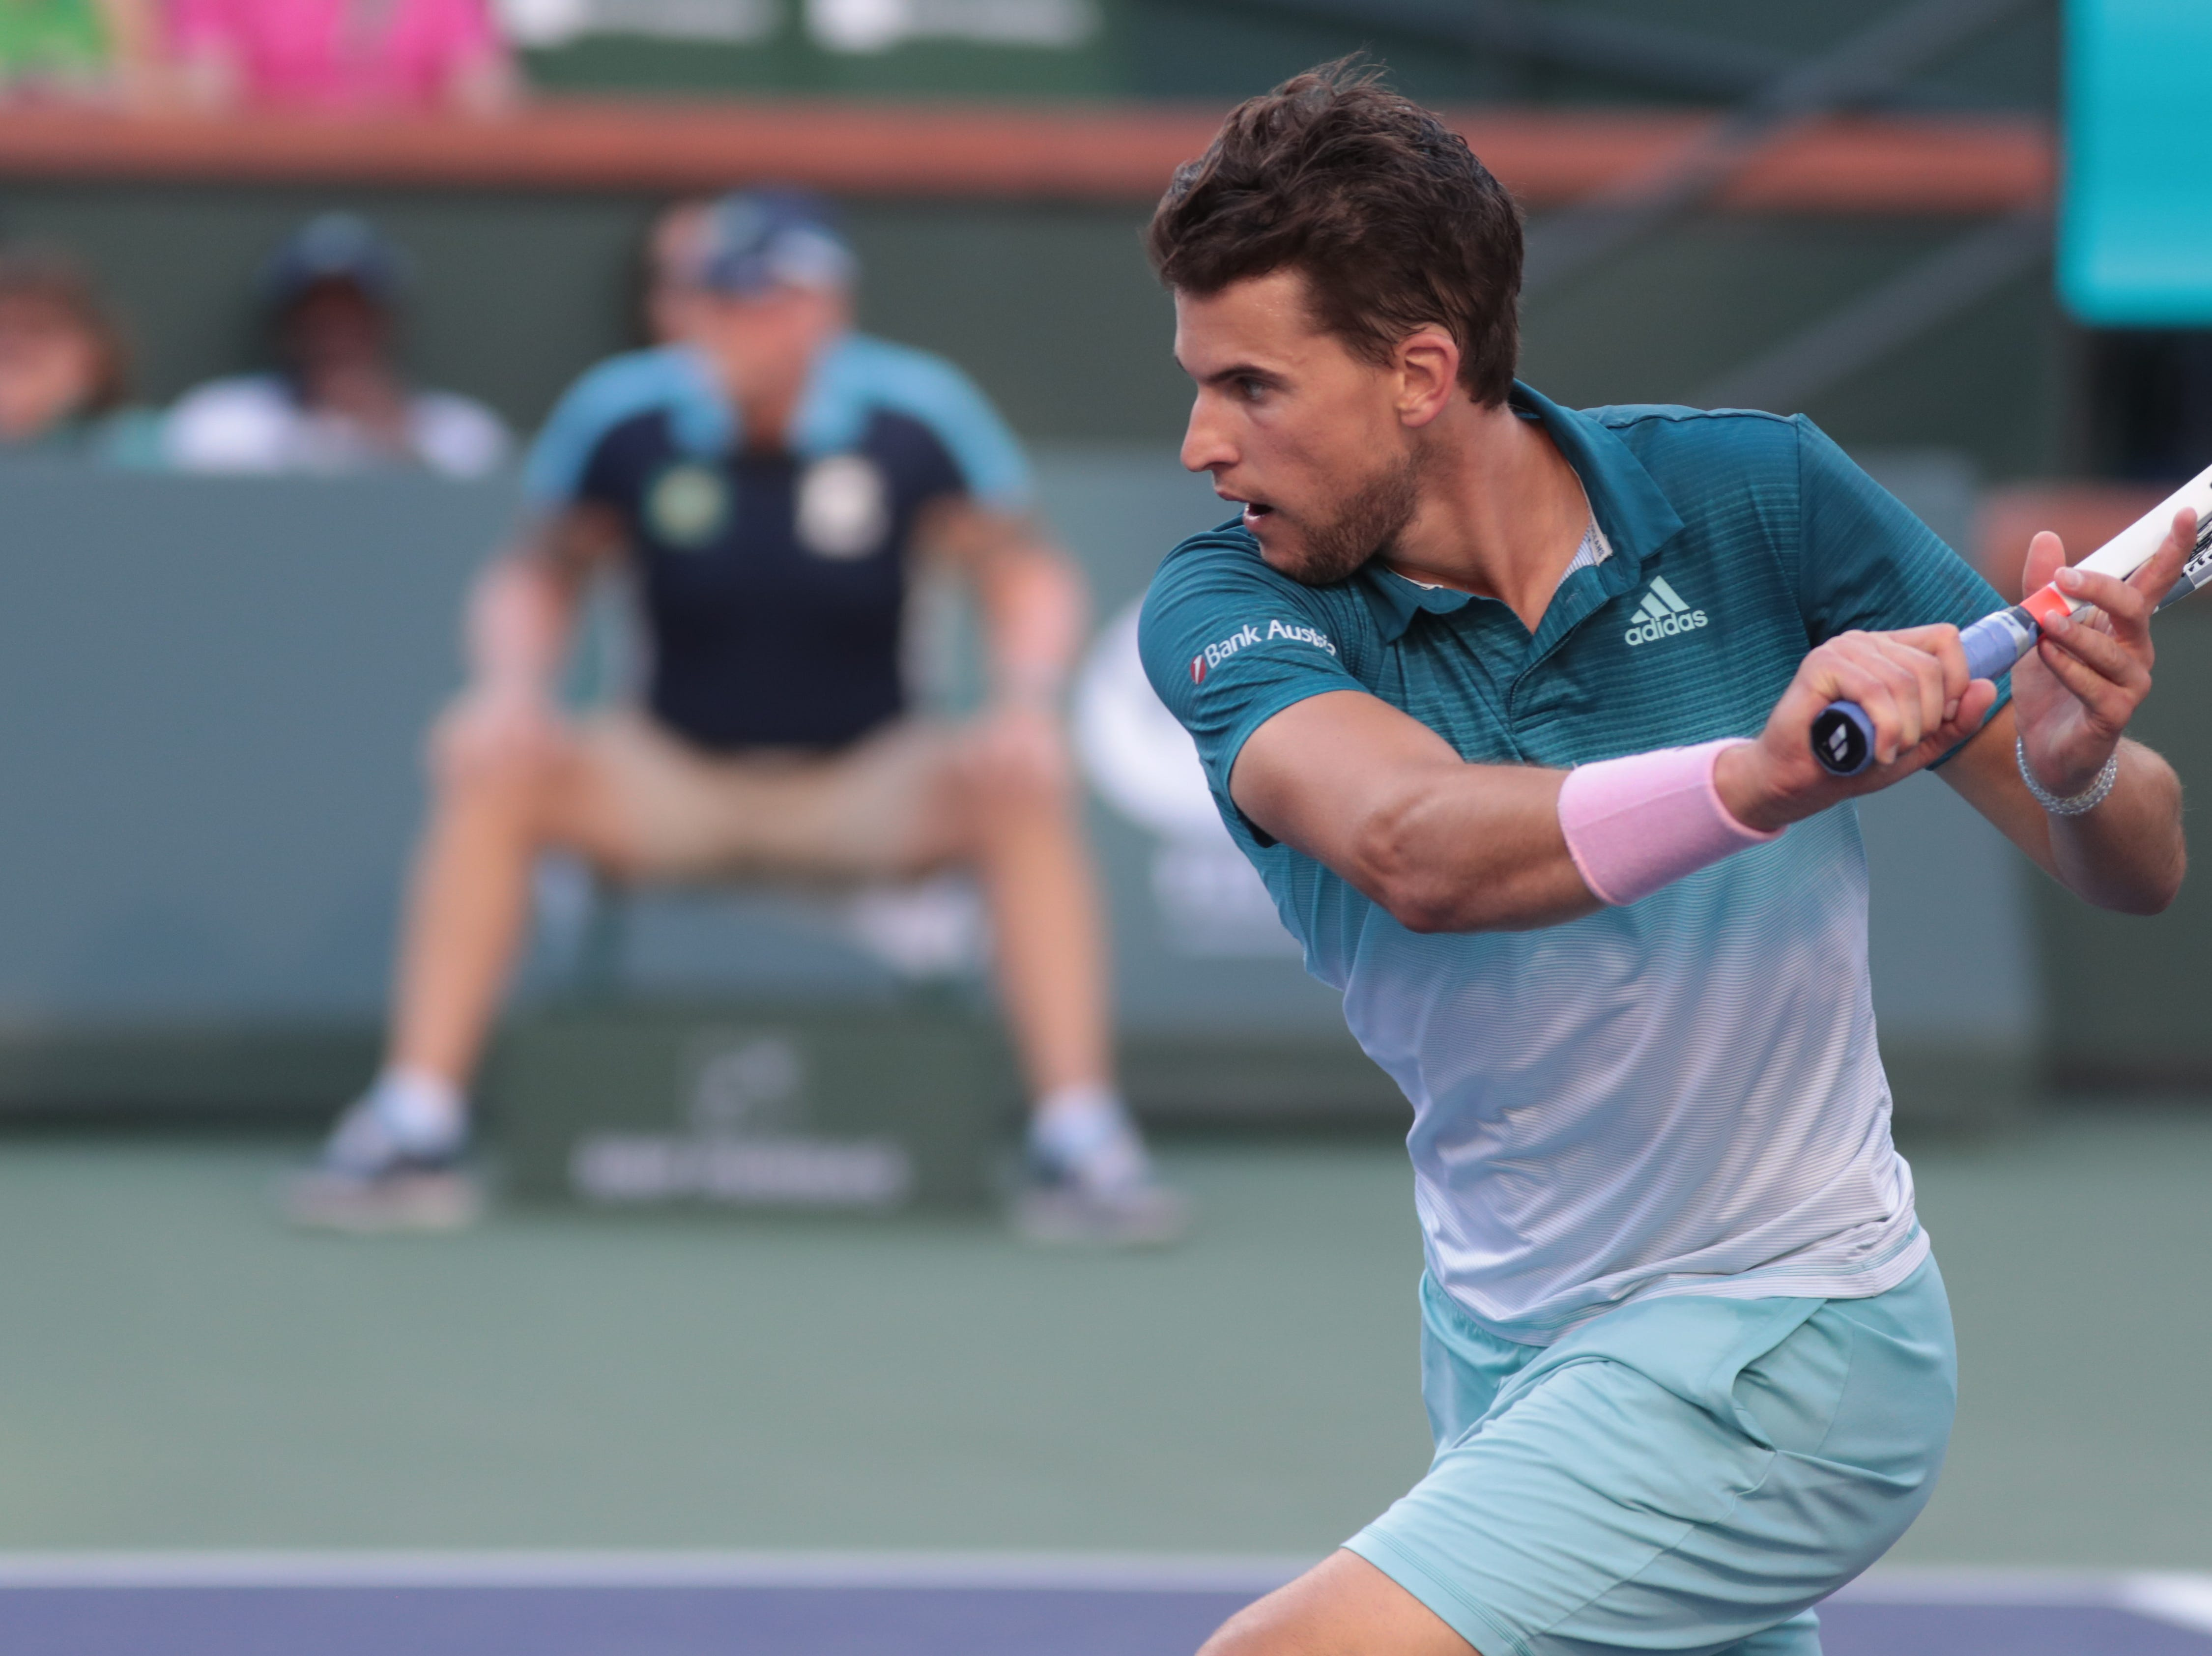 Dominic Thiem moves into the net to hit a backhand to Roger Federer in the finals of the BNP Paribas Open in Indian Wells, Calif., March 17, 2019.